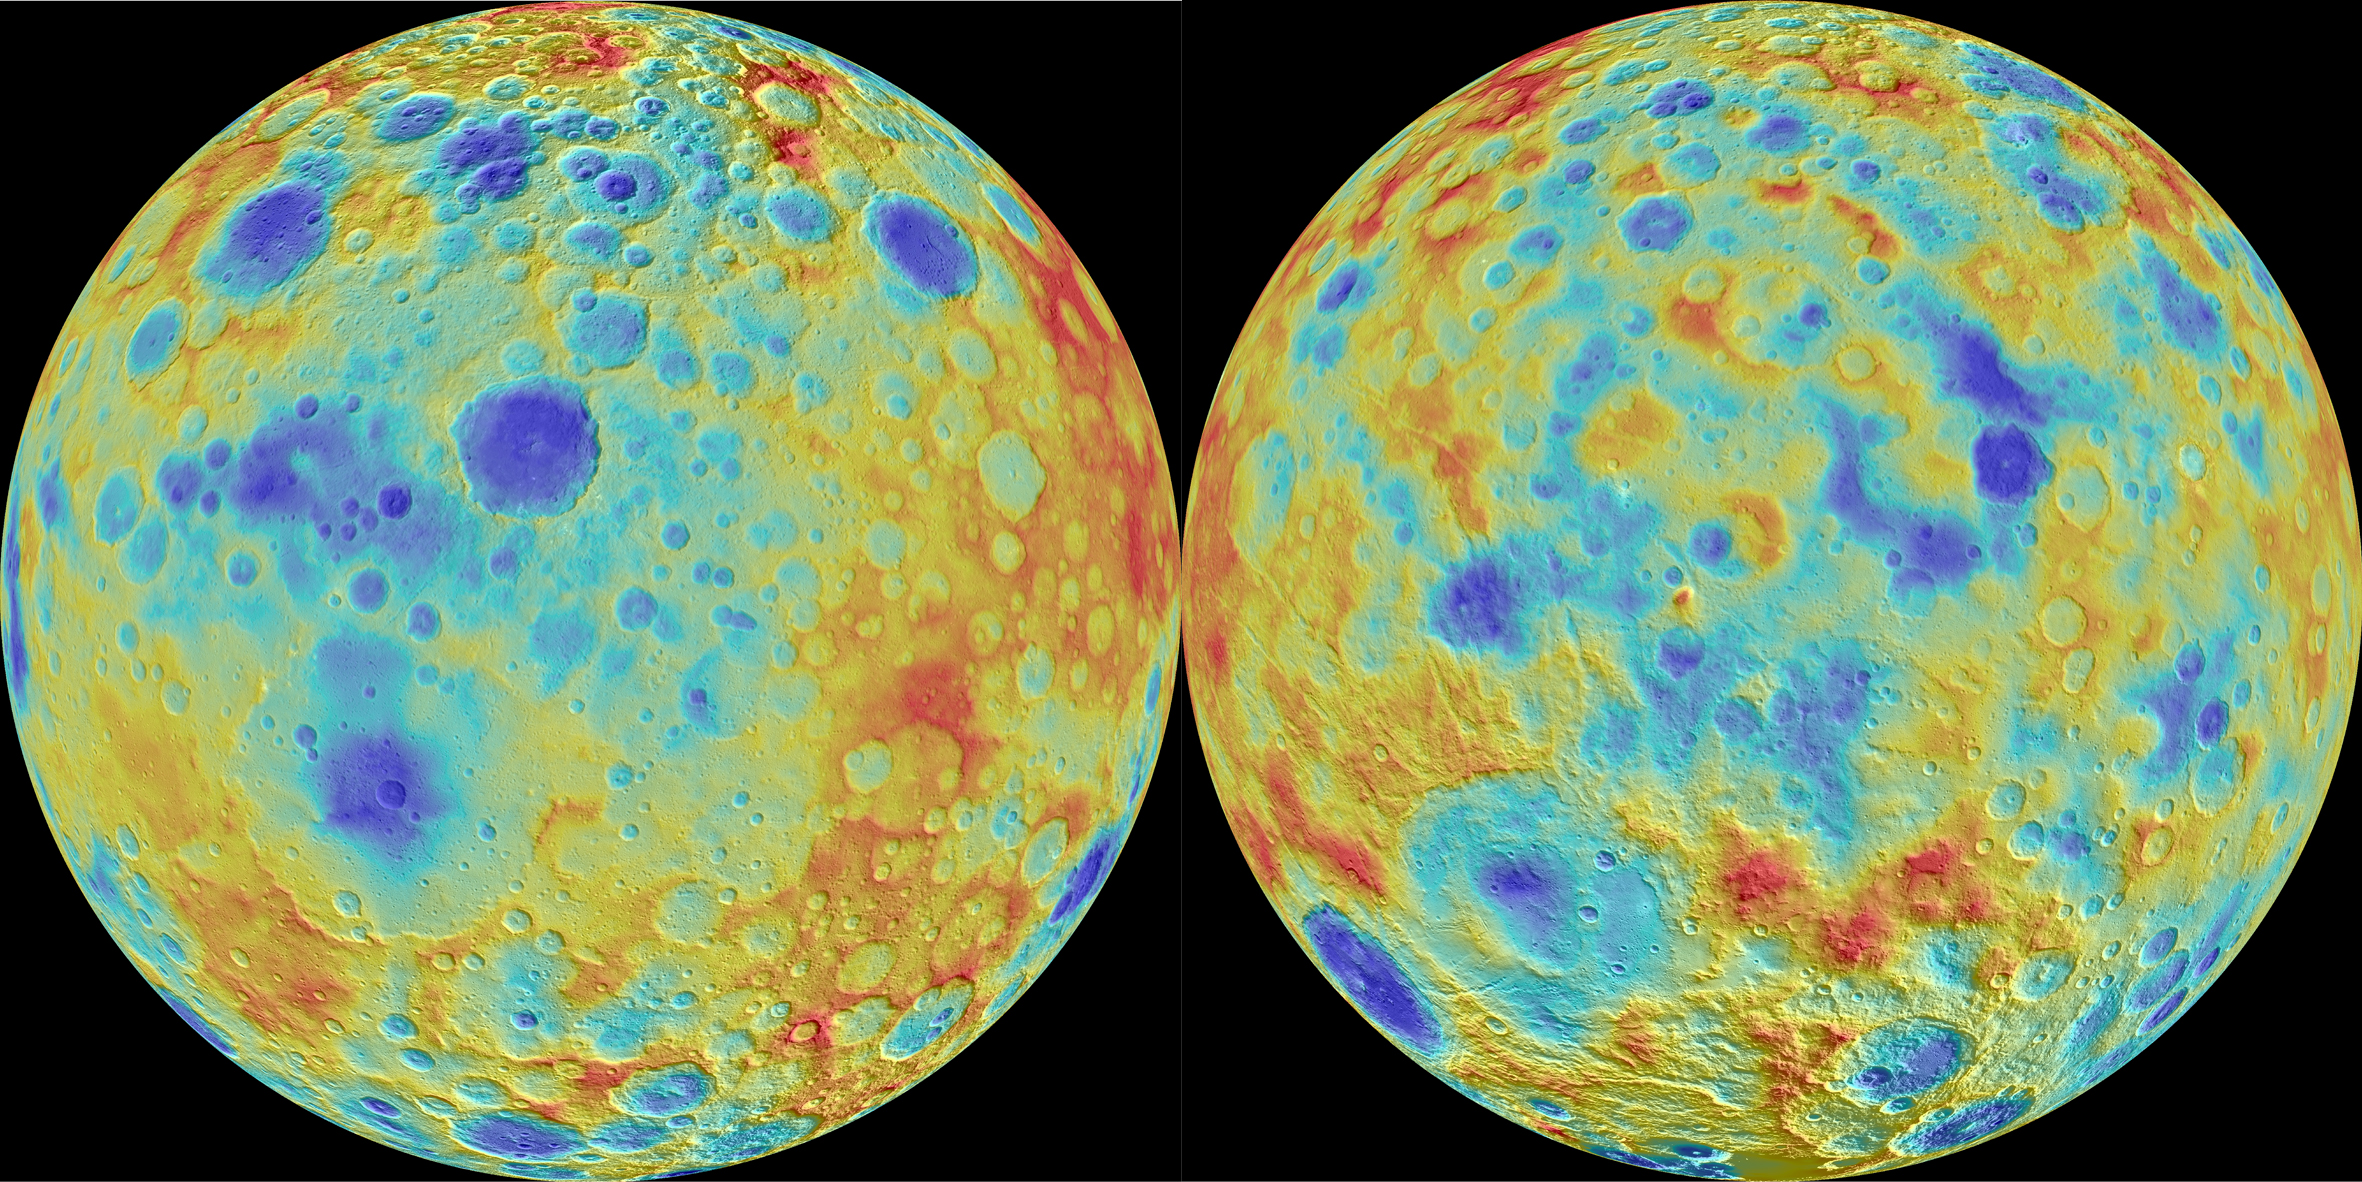 Mistaken Identity: Ceres' Mysterious Bright Spots Aren't Epsom Salt After All